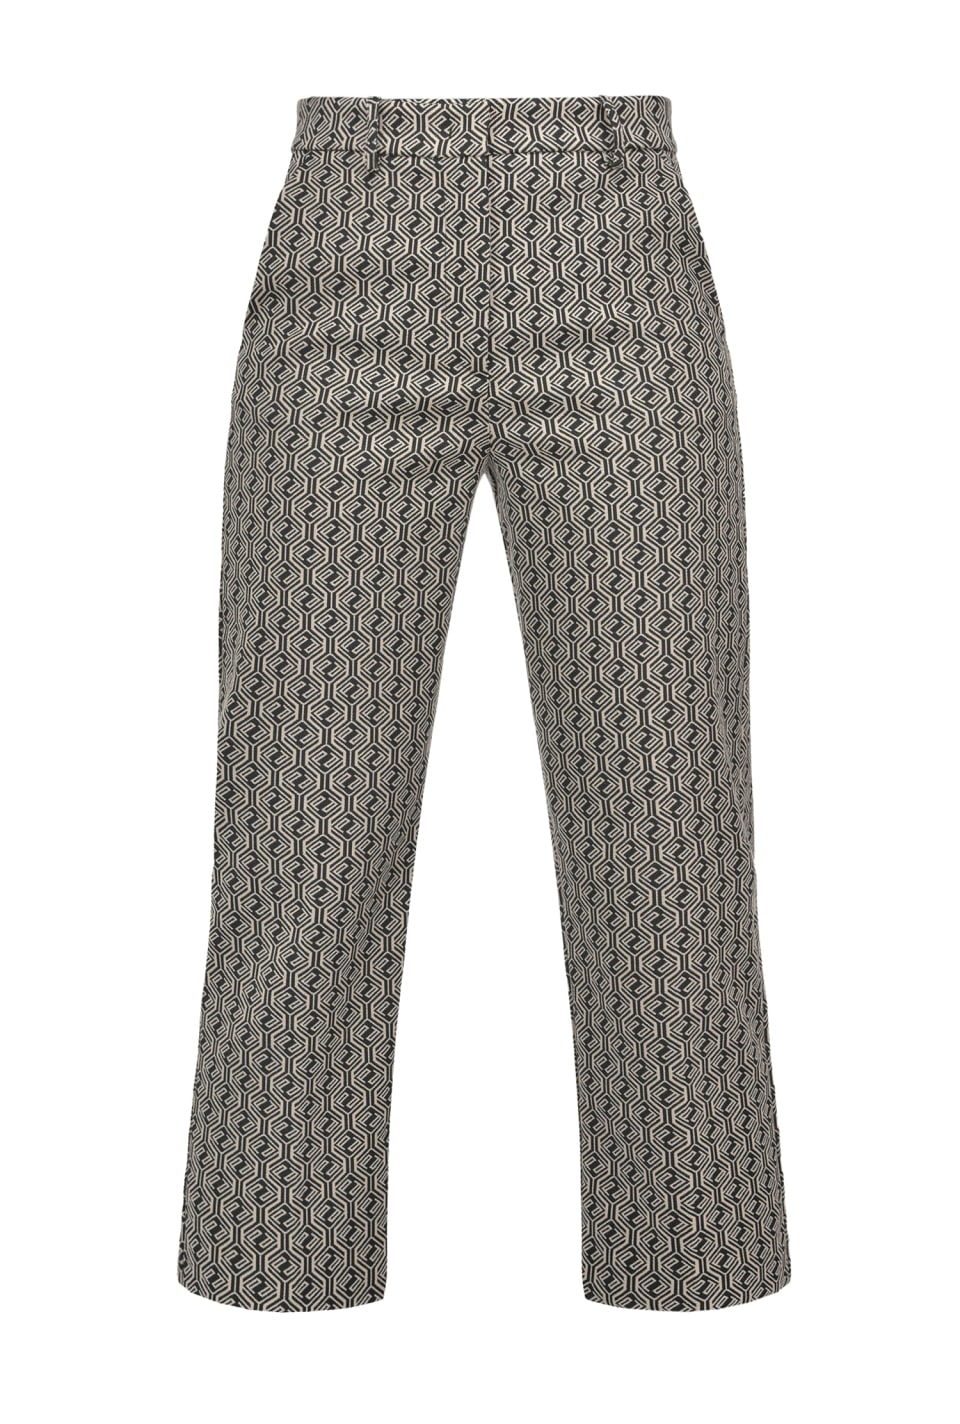 Straight geometric jacquard trousers - Pinko